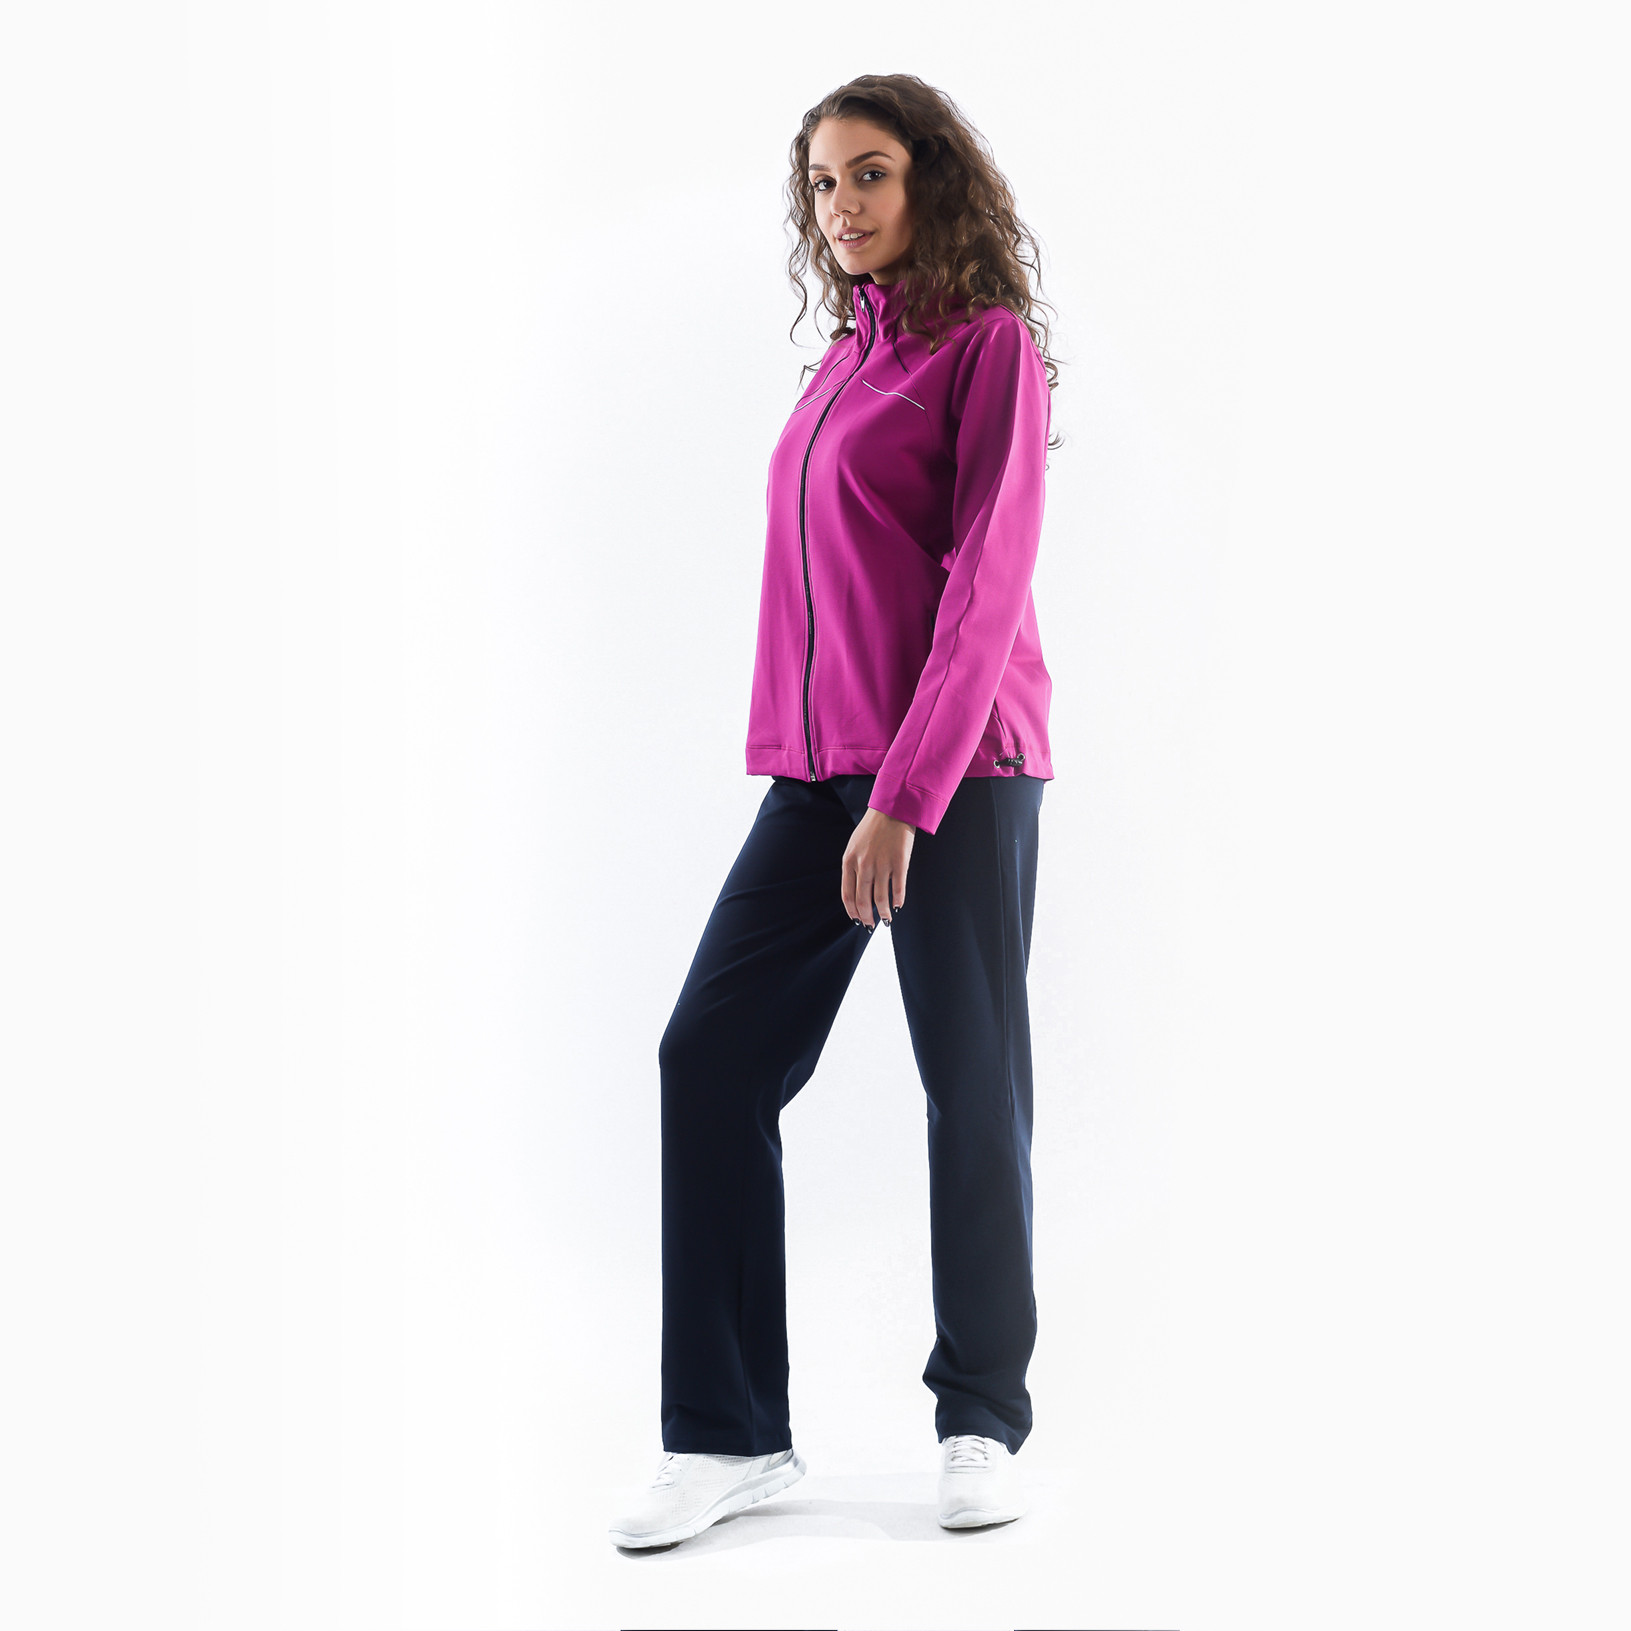 Trening Women's Plus Size Clothing